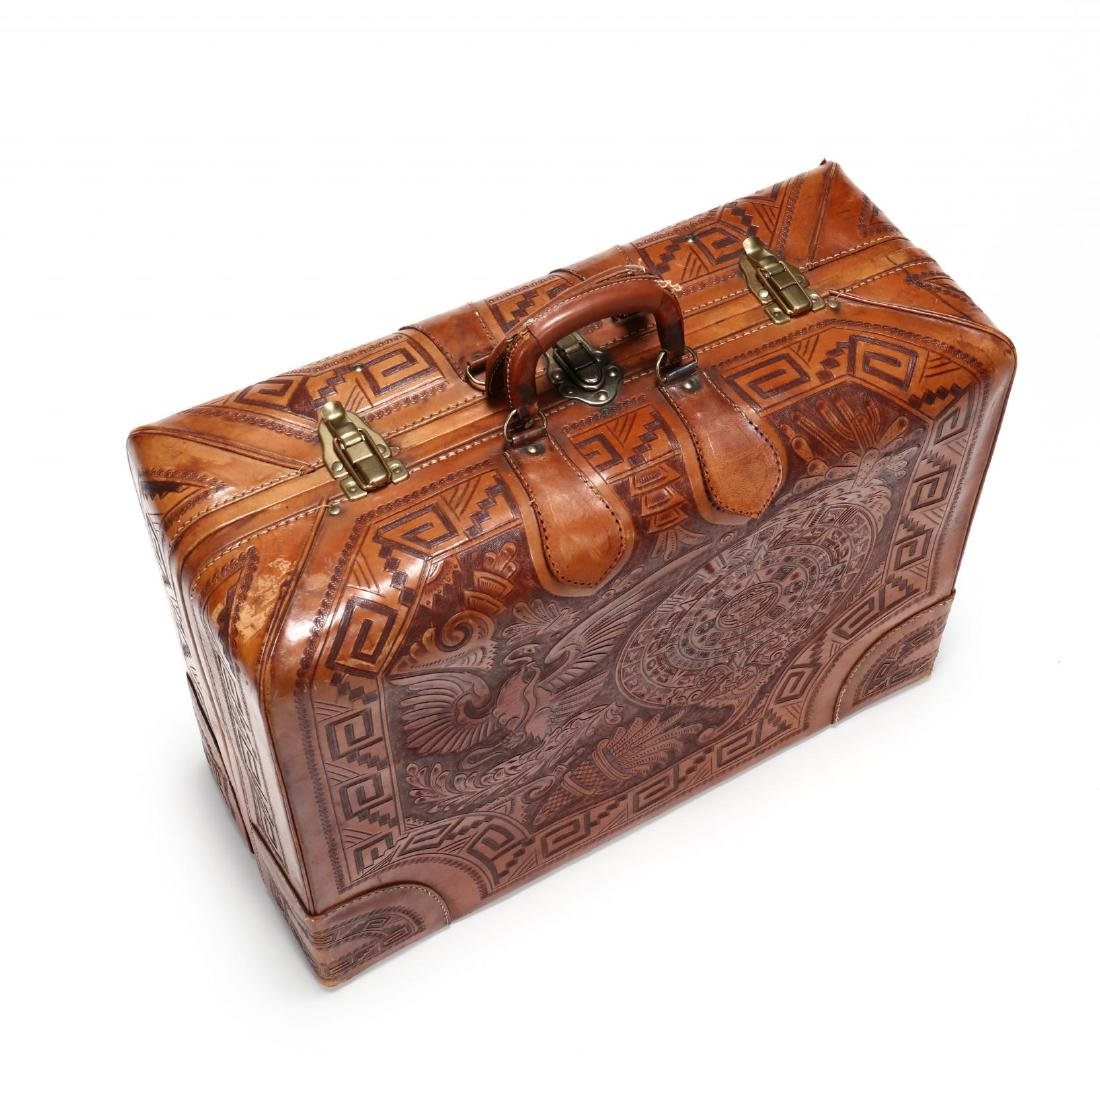 Hand Tooled Leather Suitcase, Mexico - 2